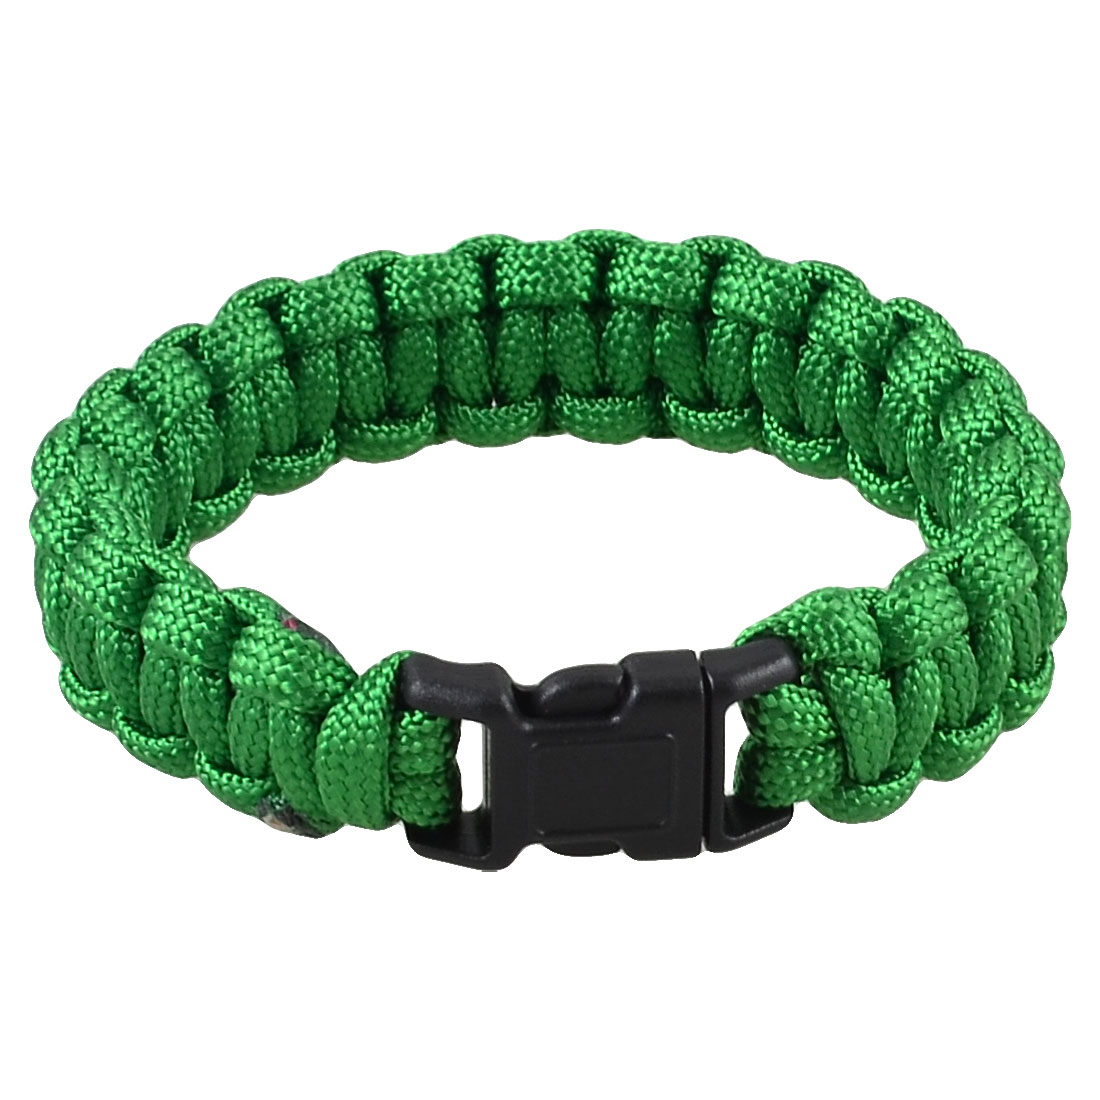 "9"" Girth Plastic Side Release Buckle Parachute Cord Survival Bracelet Dark Green 220Lbs"